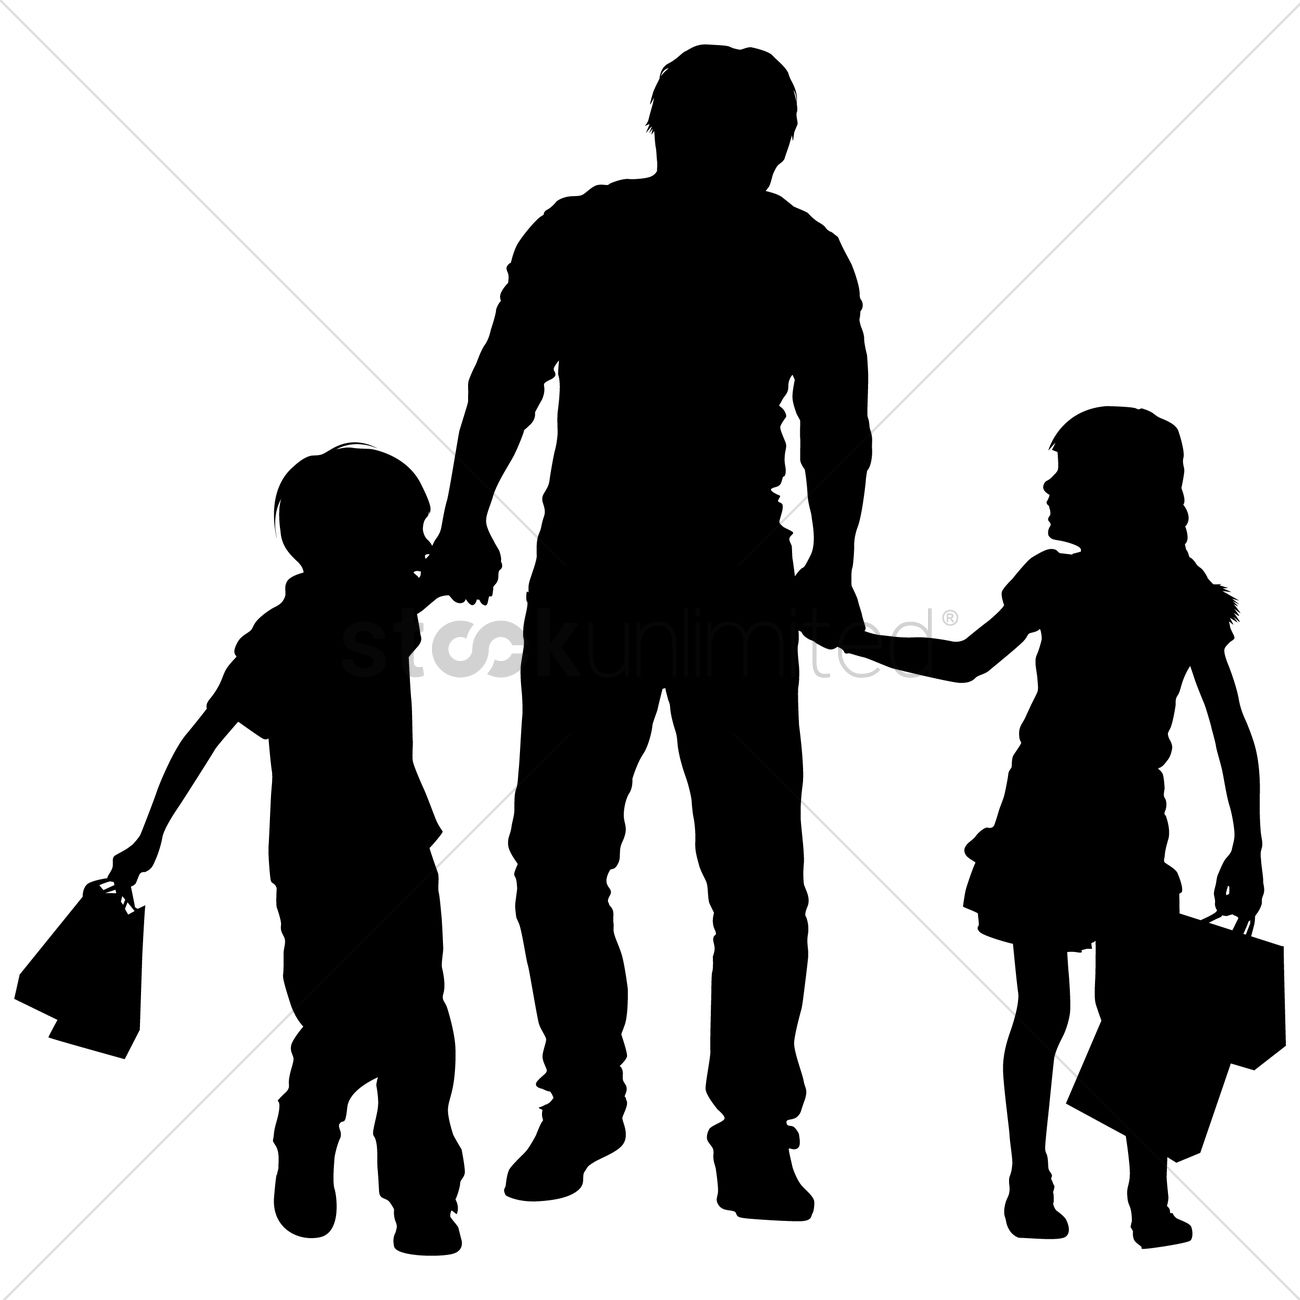 father silhouette silhouette of a father and kids shopping vector image silhouette father